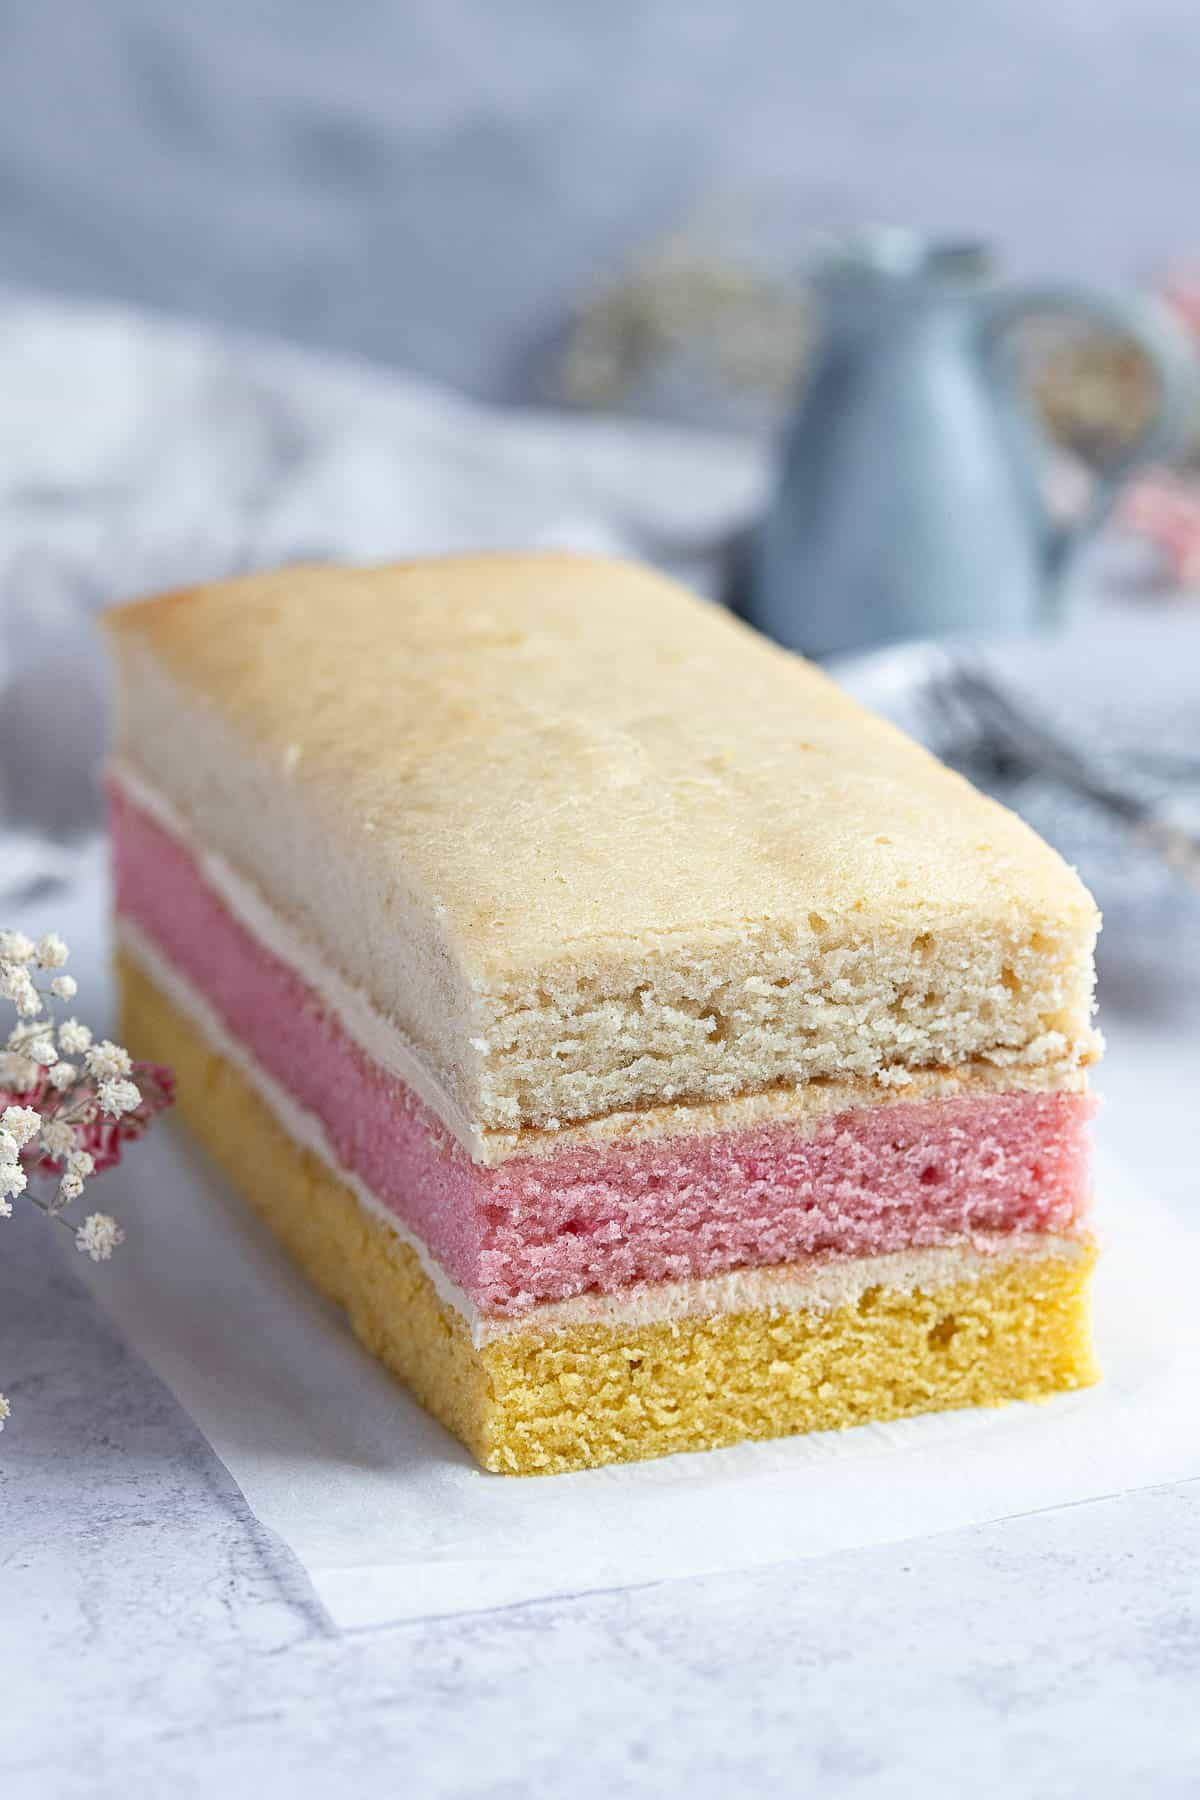 The assembled angel cake.